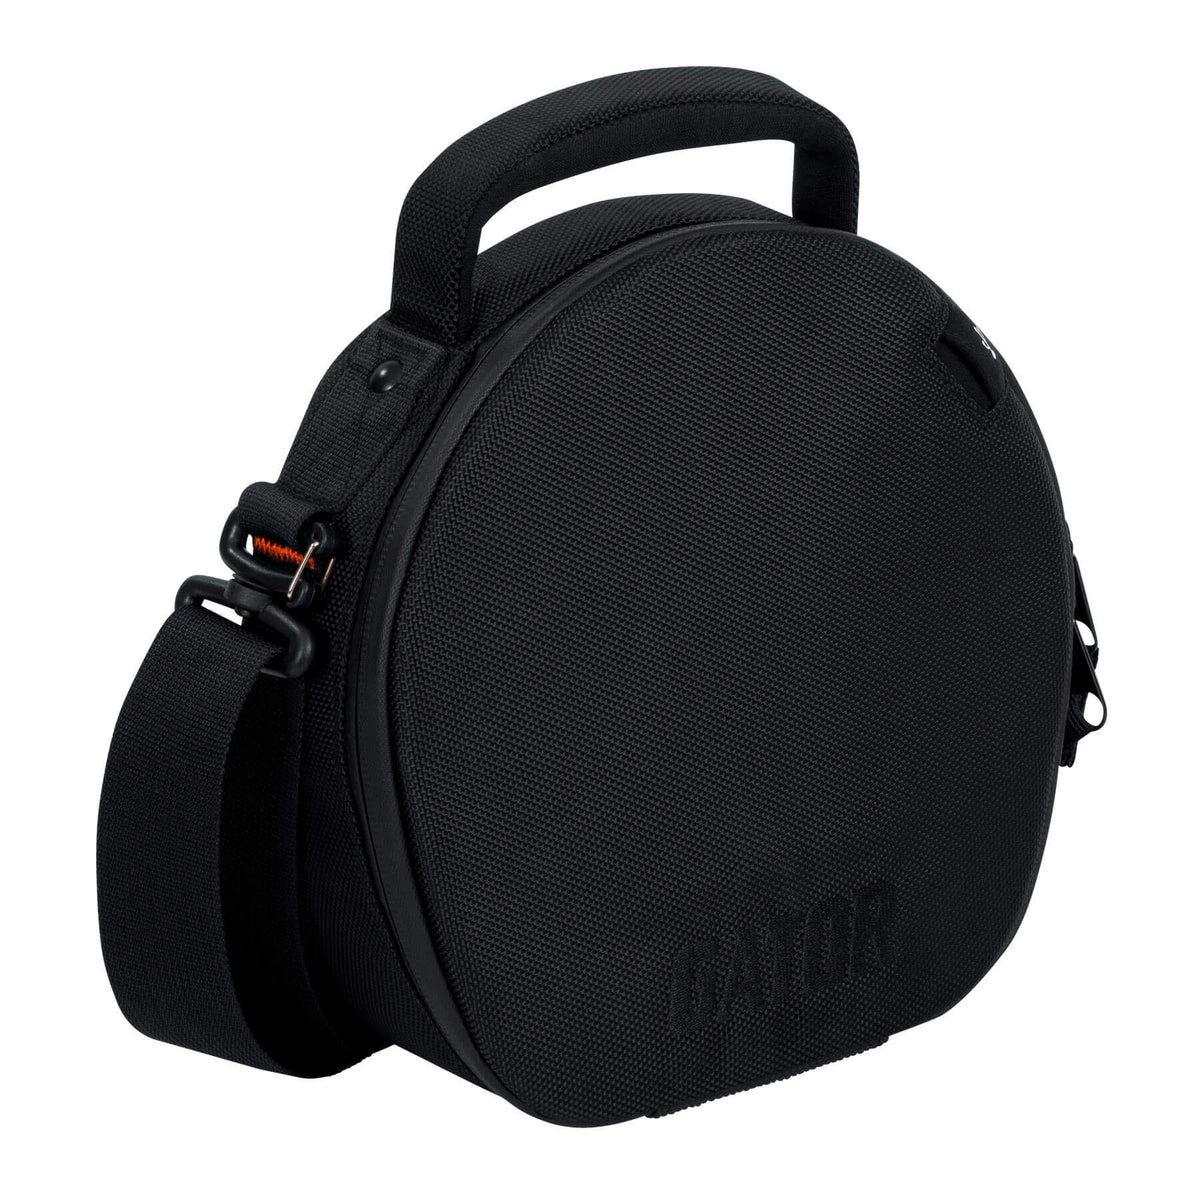 Gator Cases G-CLUB-HEADPHONE DJ Headphone Case